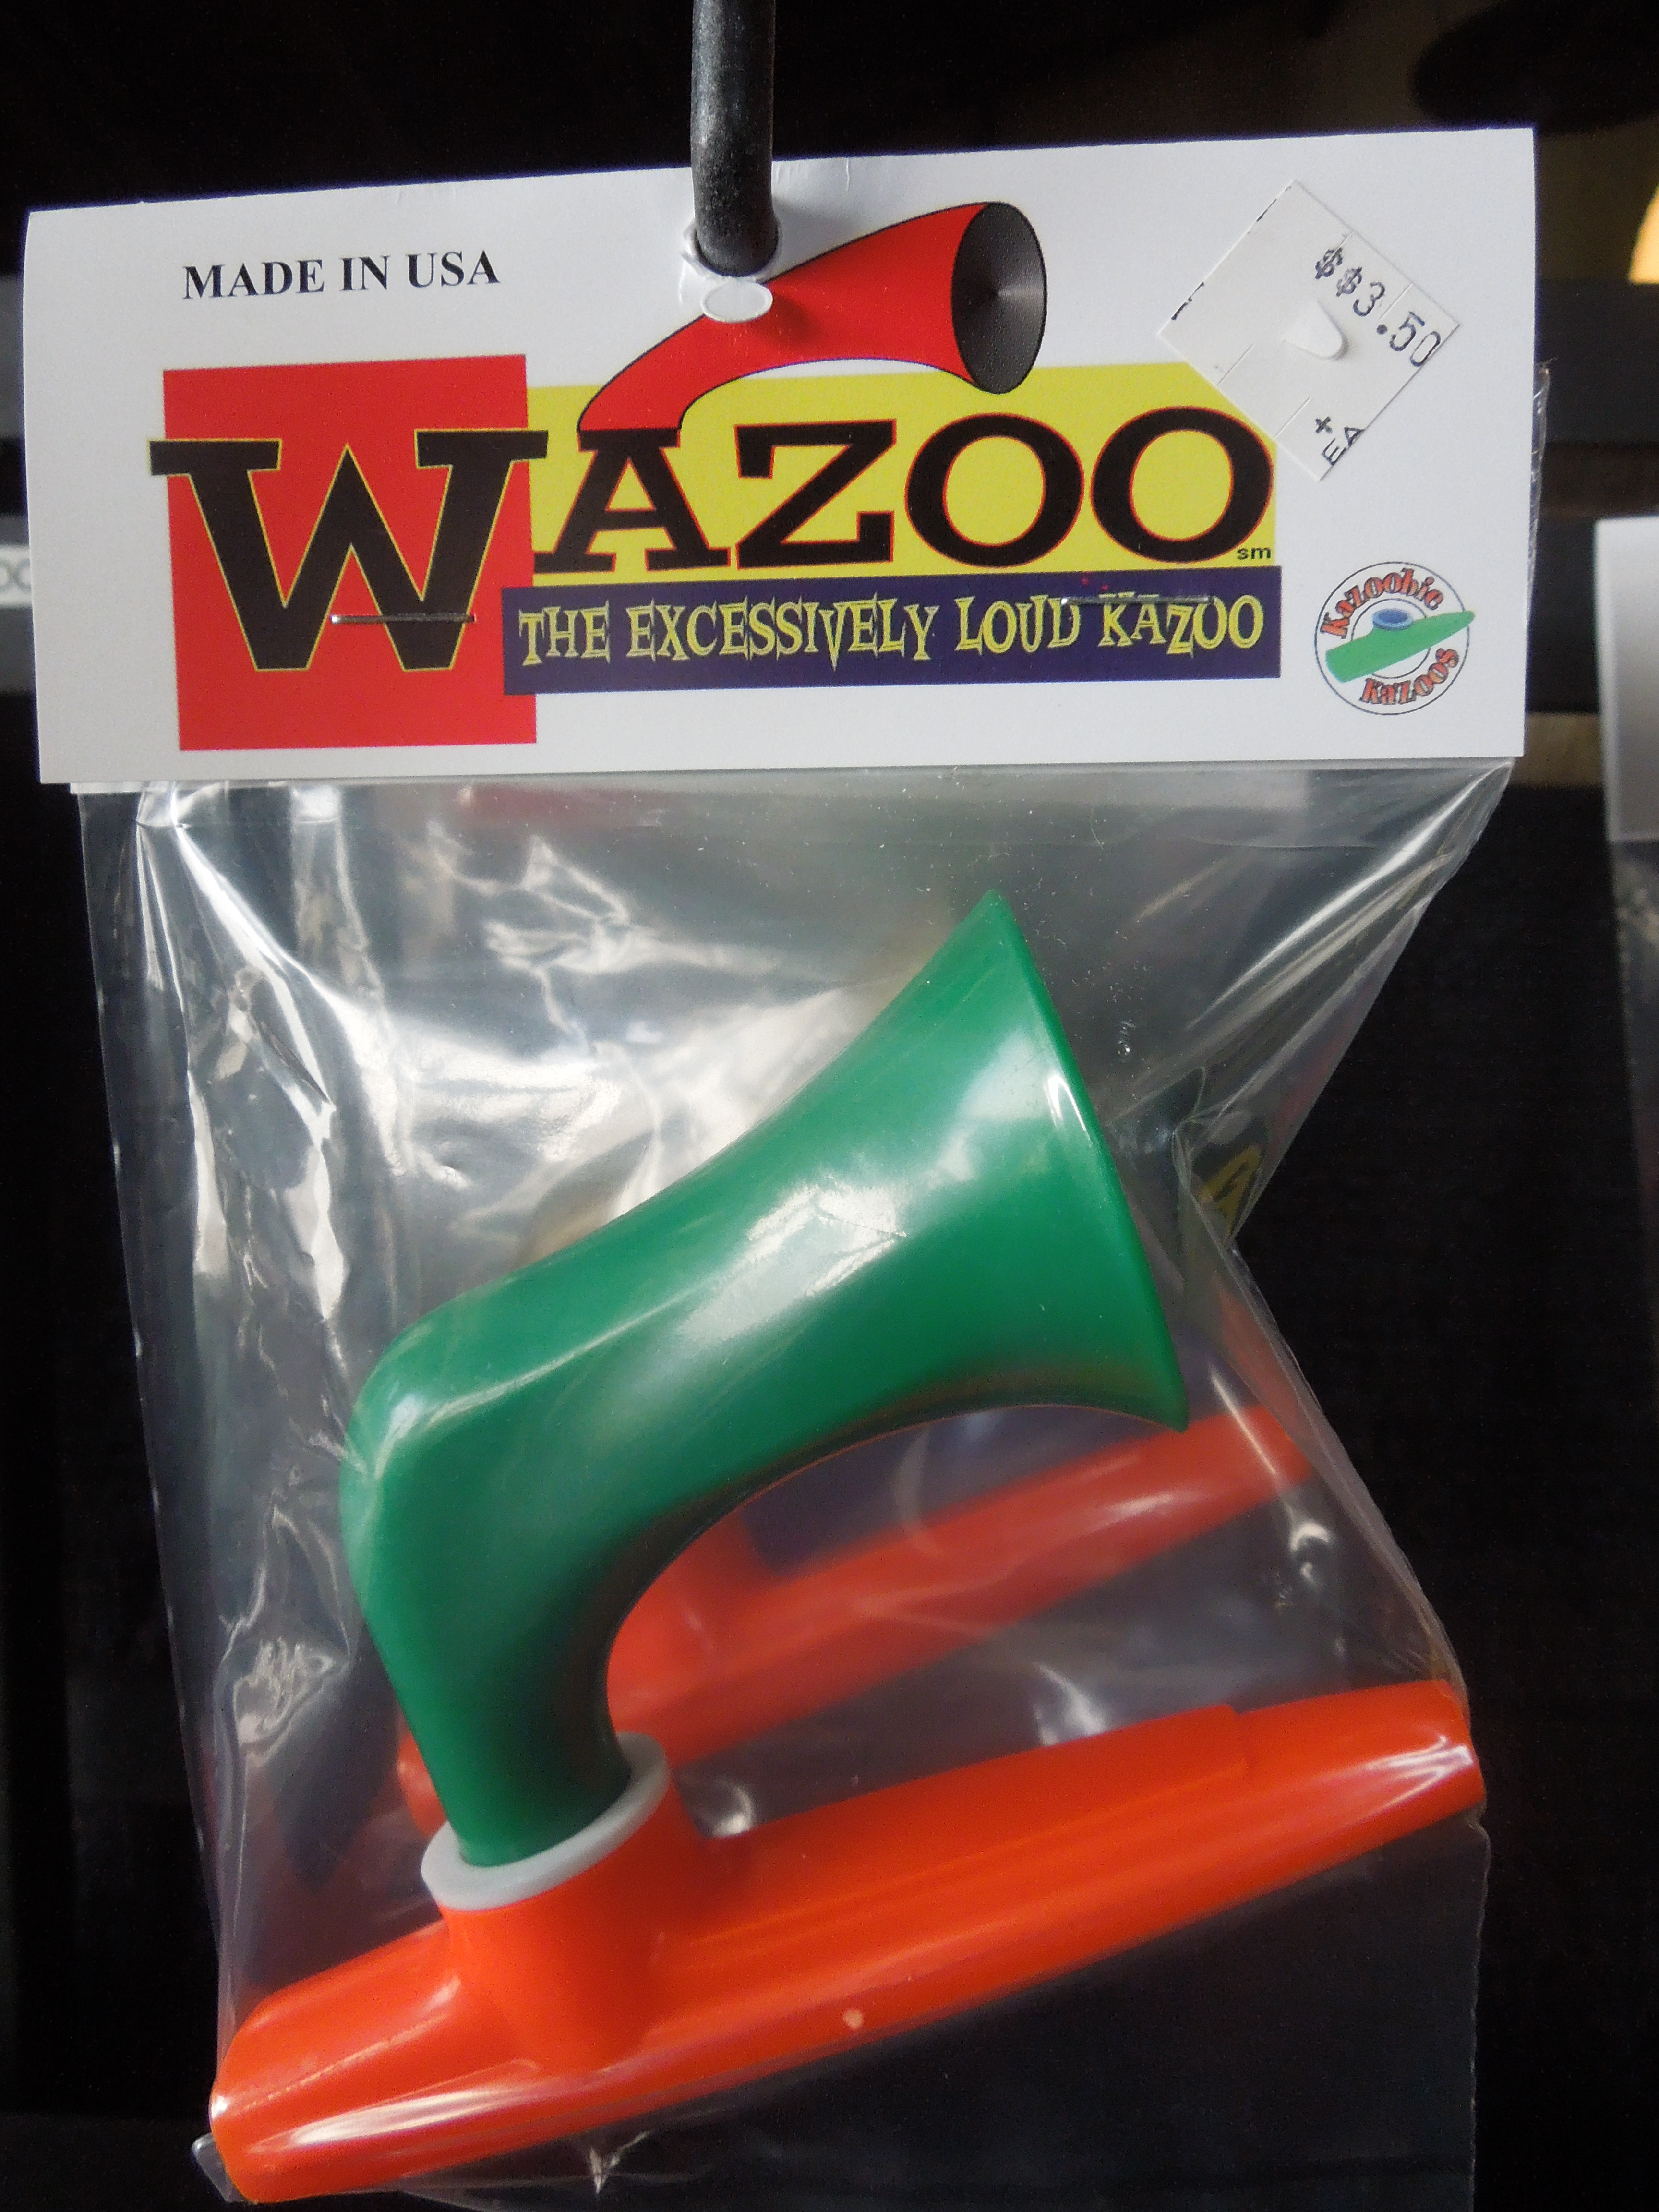 Tempted by wazoo